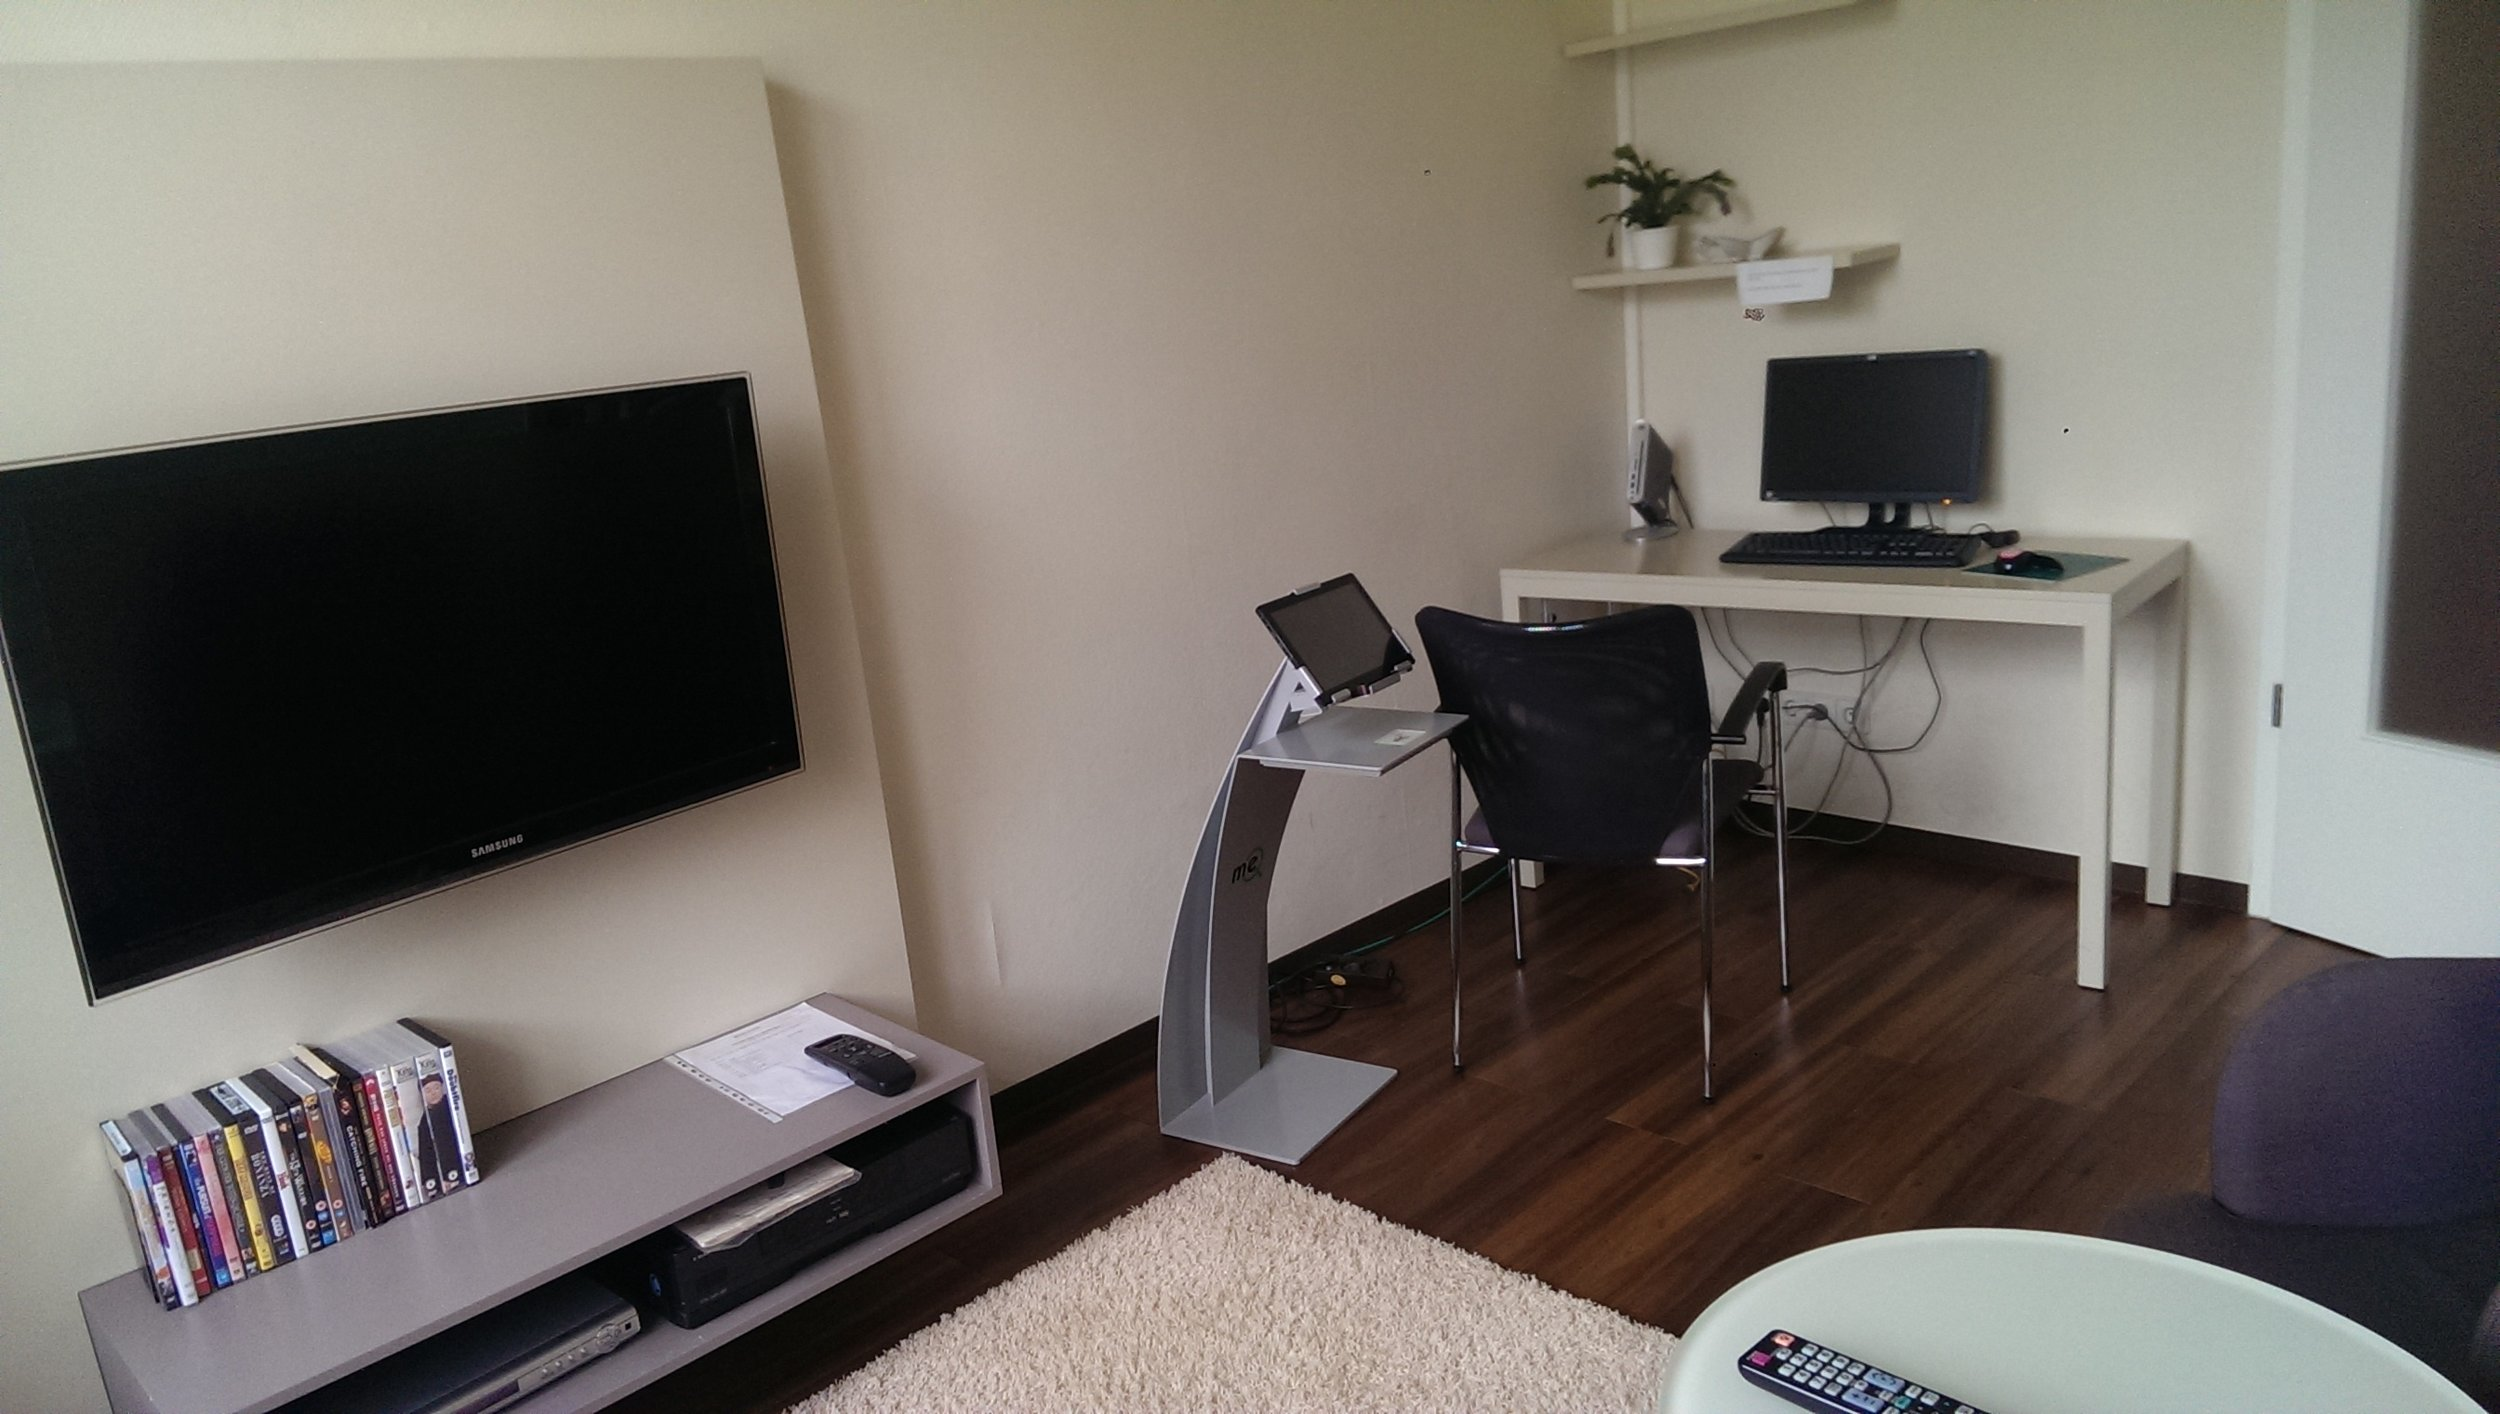 TV Room with Patient Computer